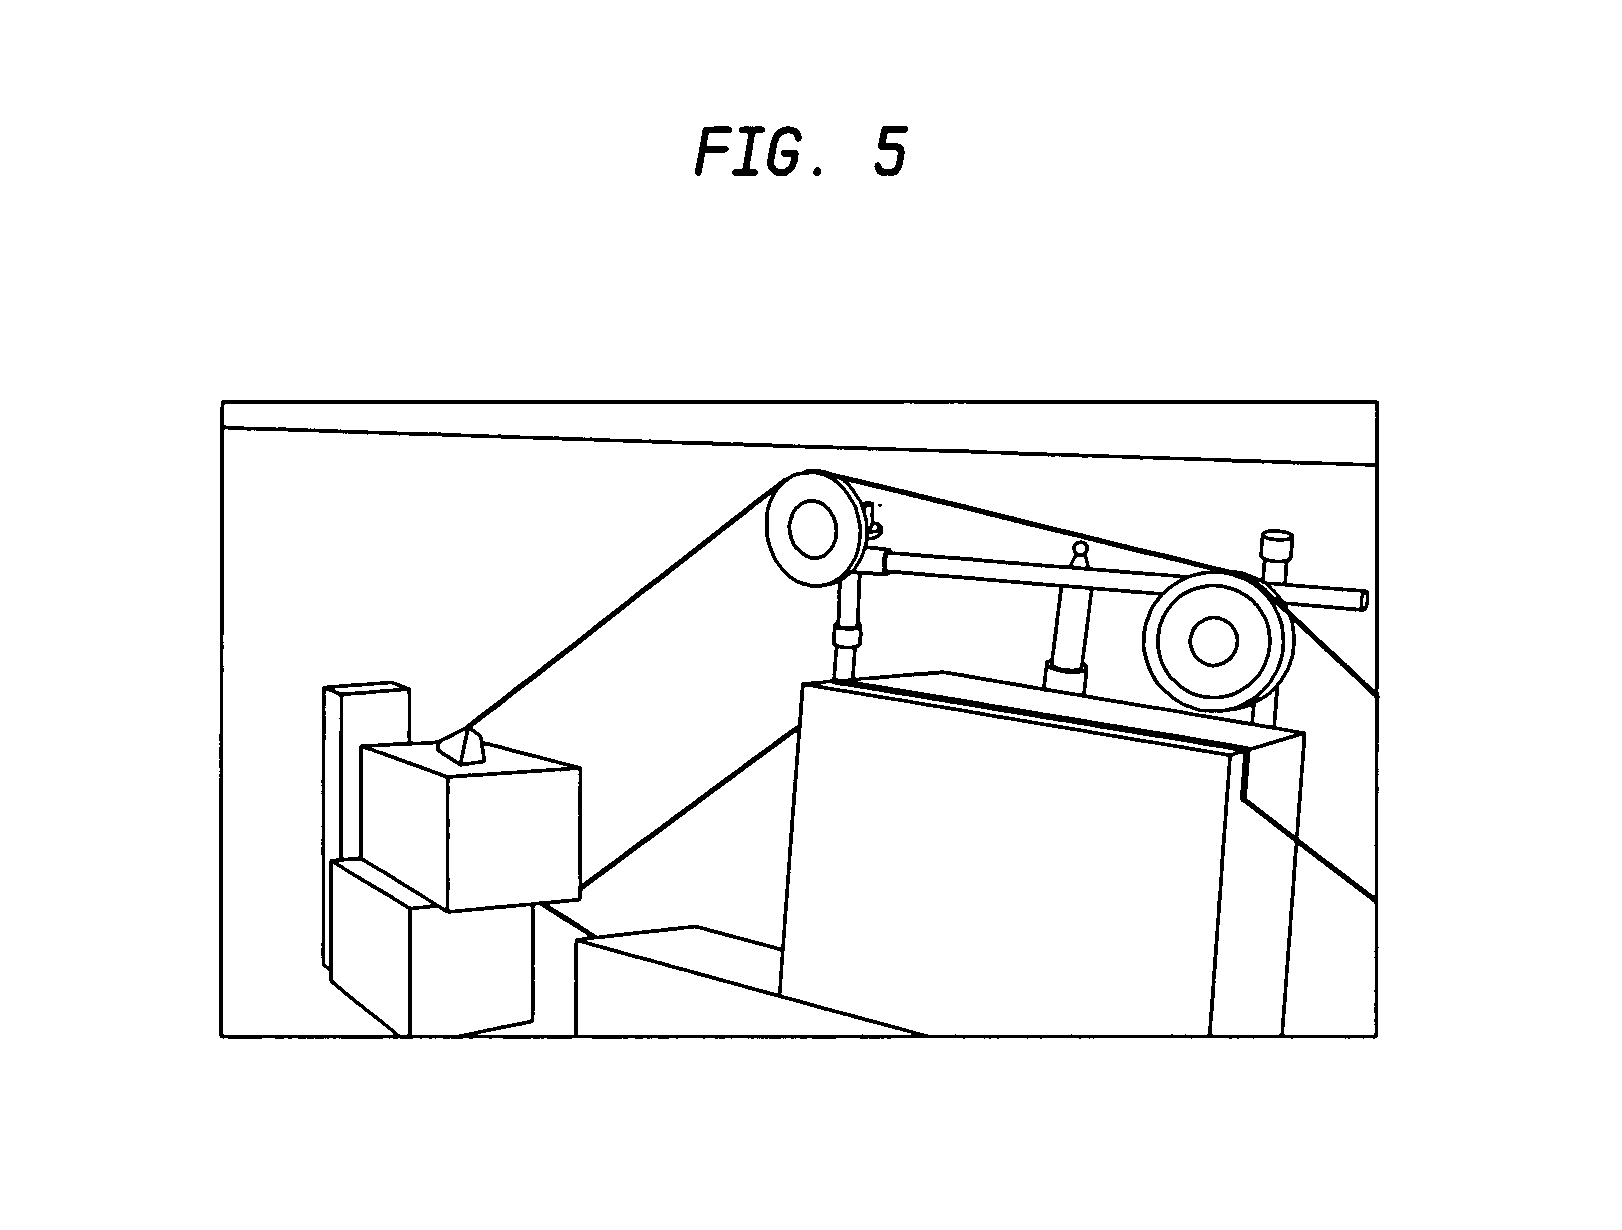 patent us6881131 - method and apparatus for diamond wire cutting of metal structures